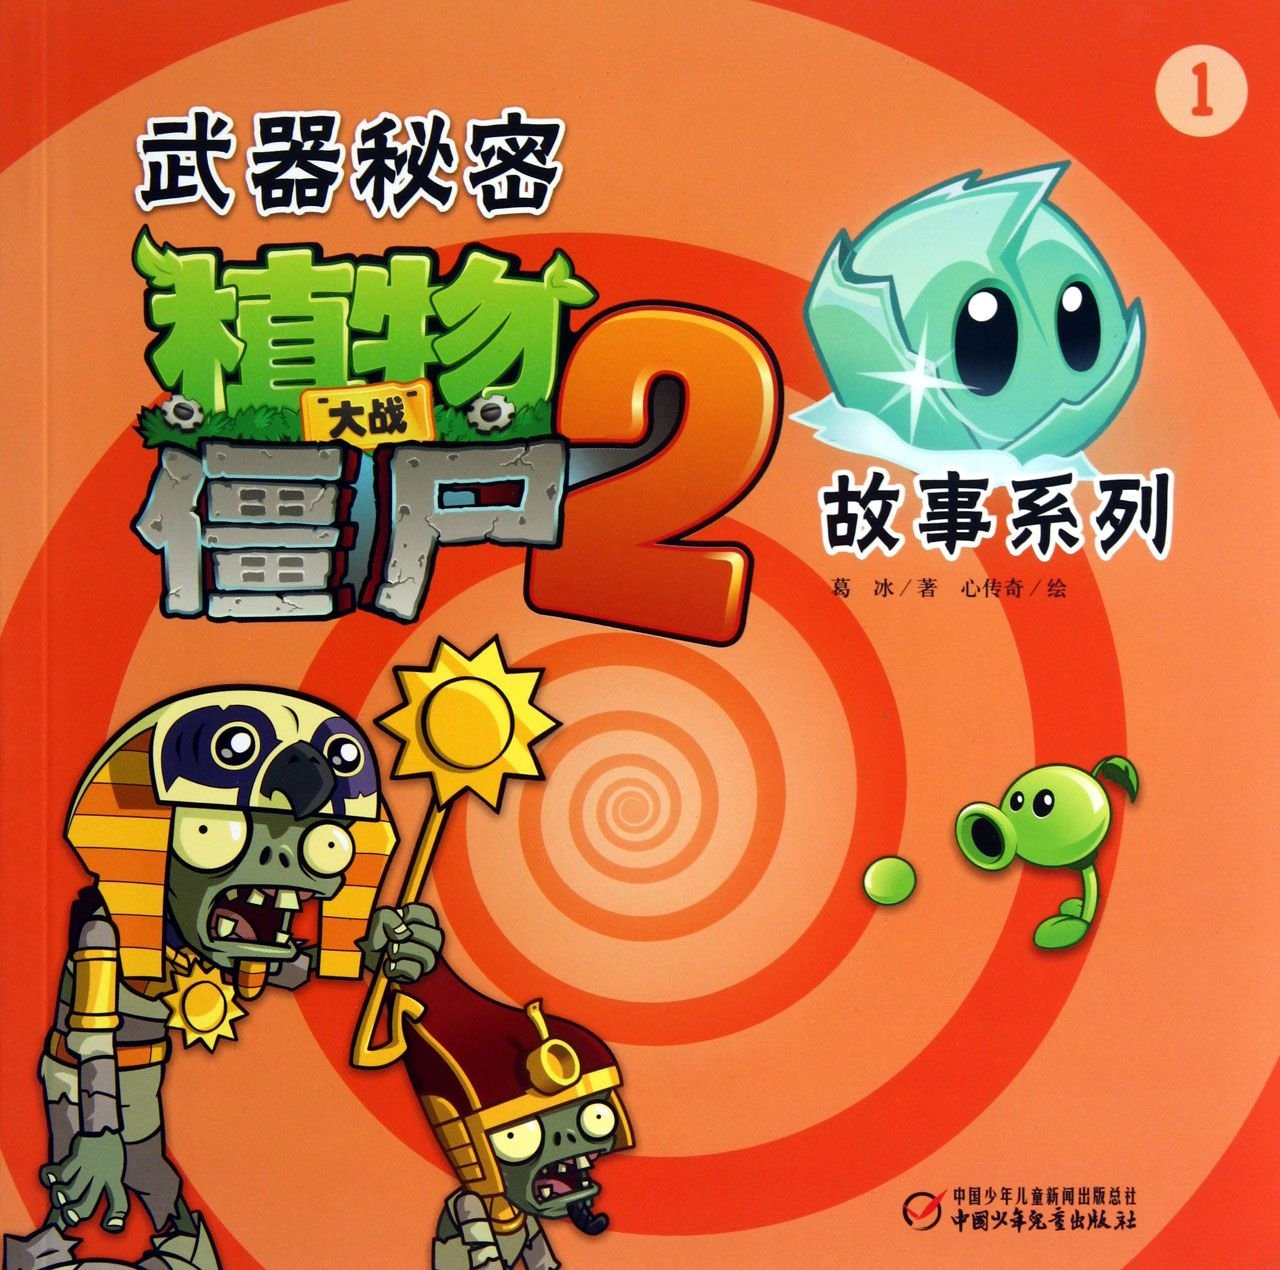 Plants vs Zombies 2 ( Secret Stories of Weapon Series 1) (Chinese Edition) pdf epub